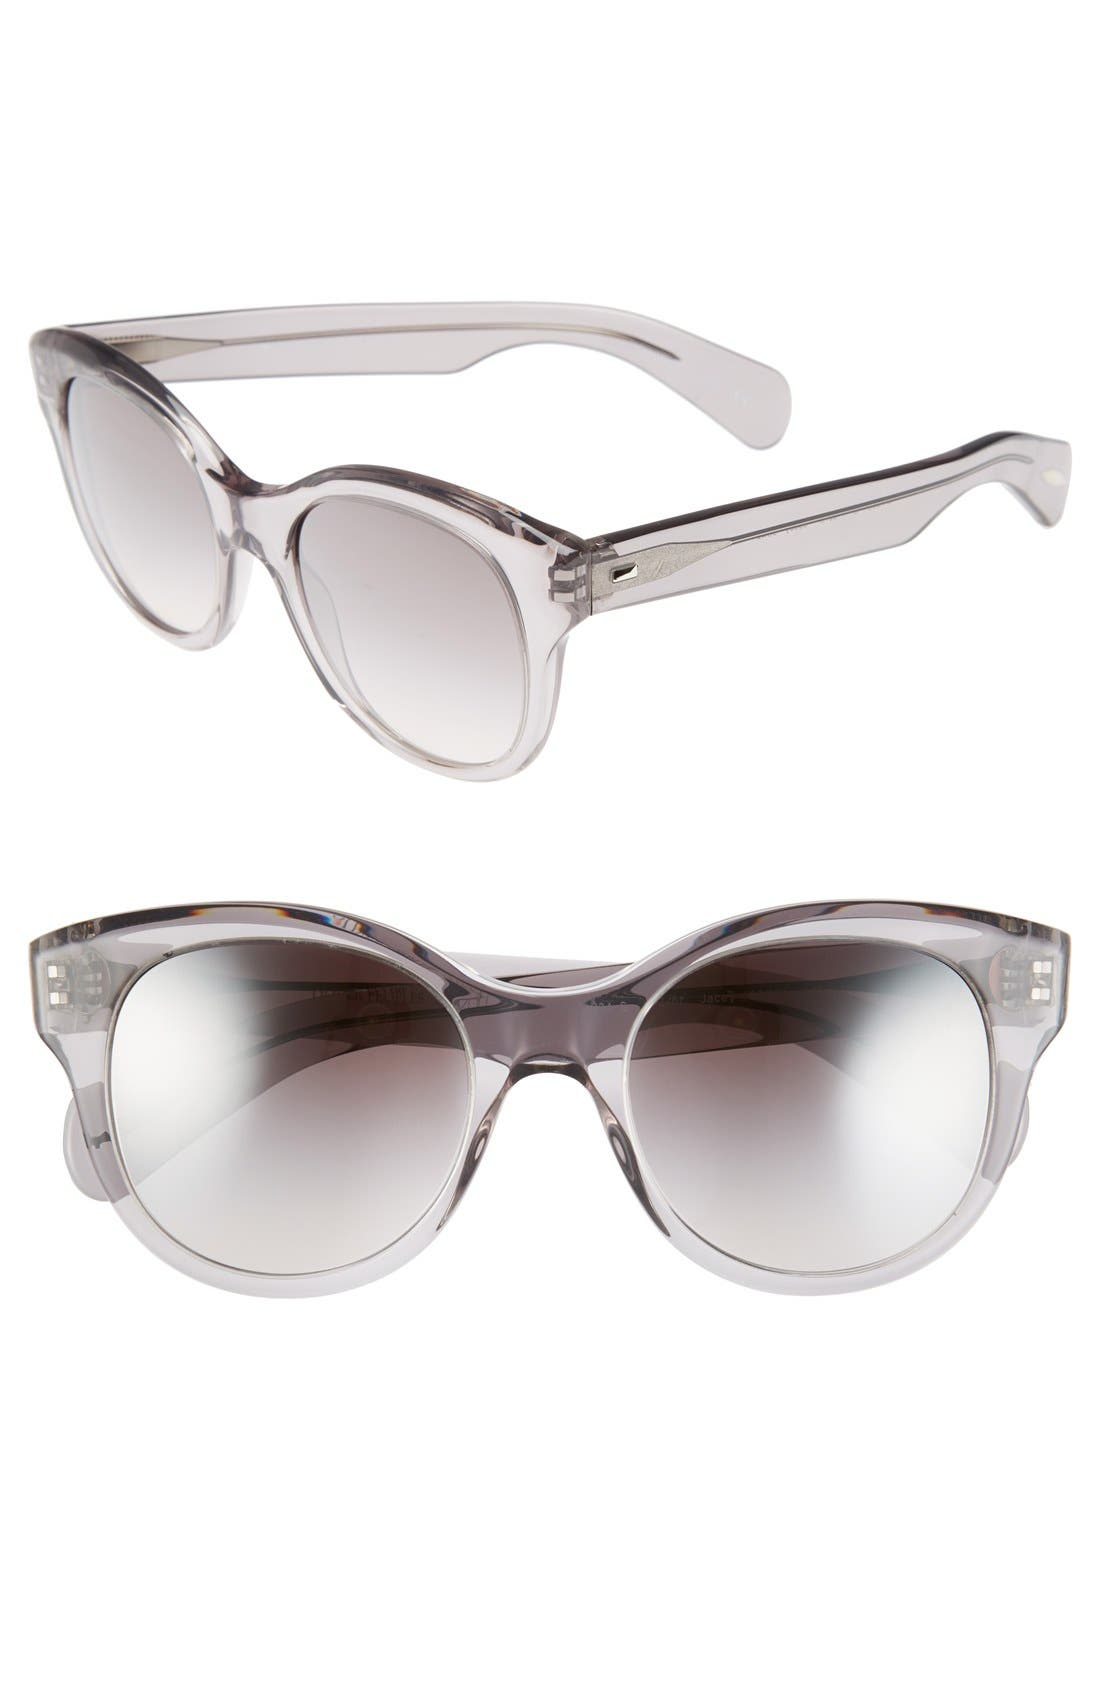 Main Image - Oliver Peoples 'Jacey' 53mm Sunglasses